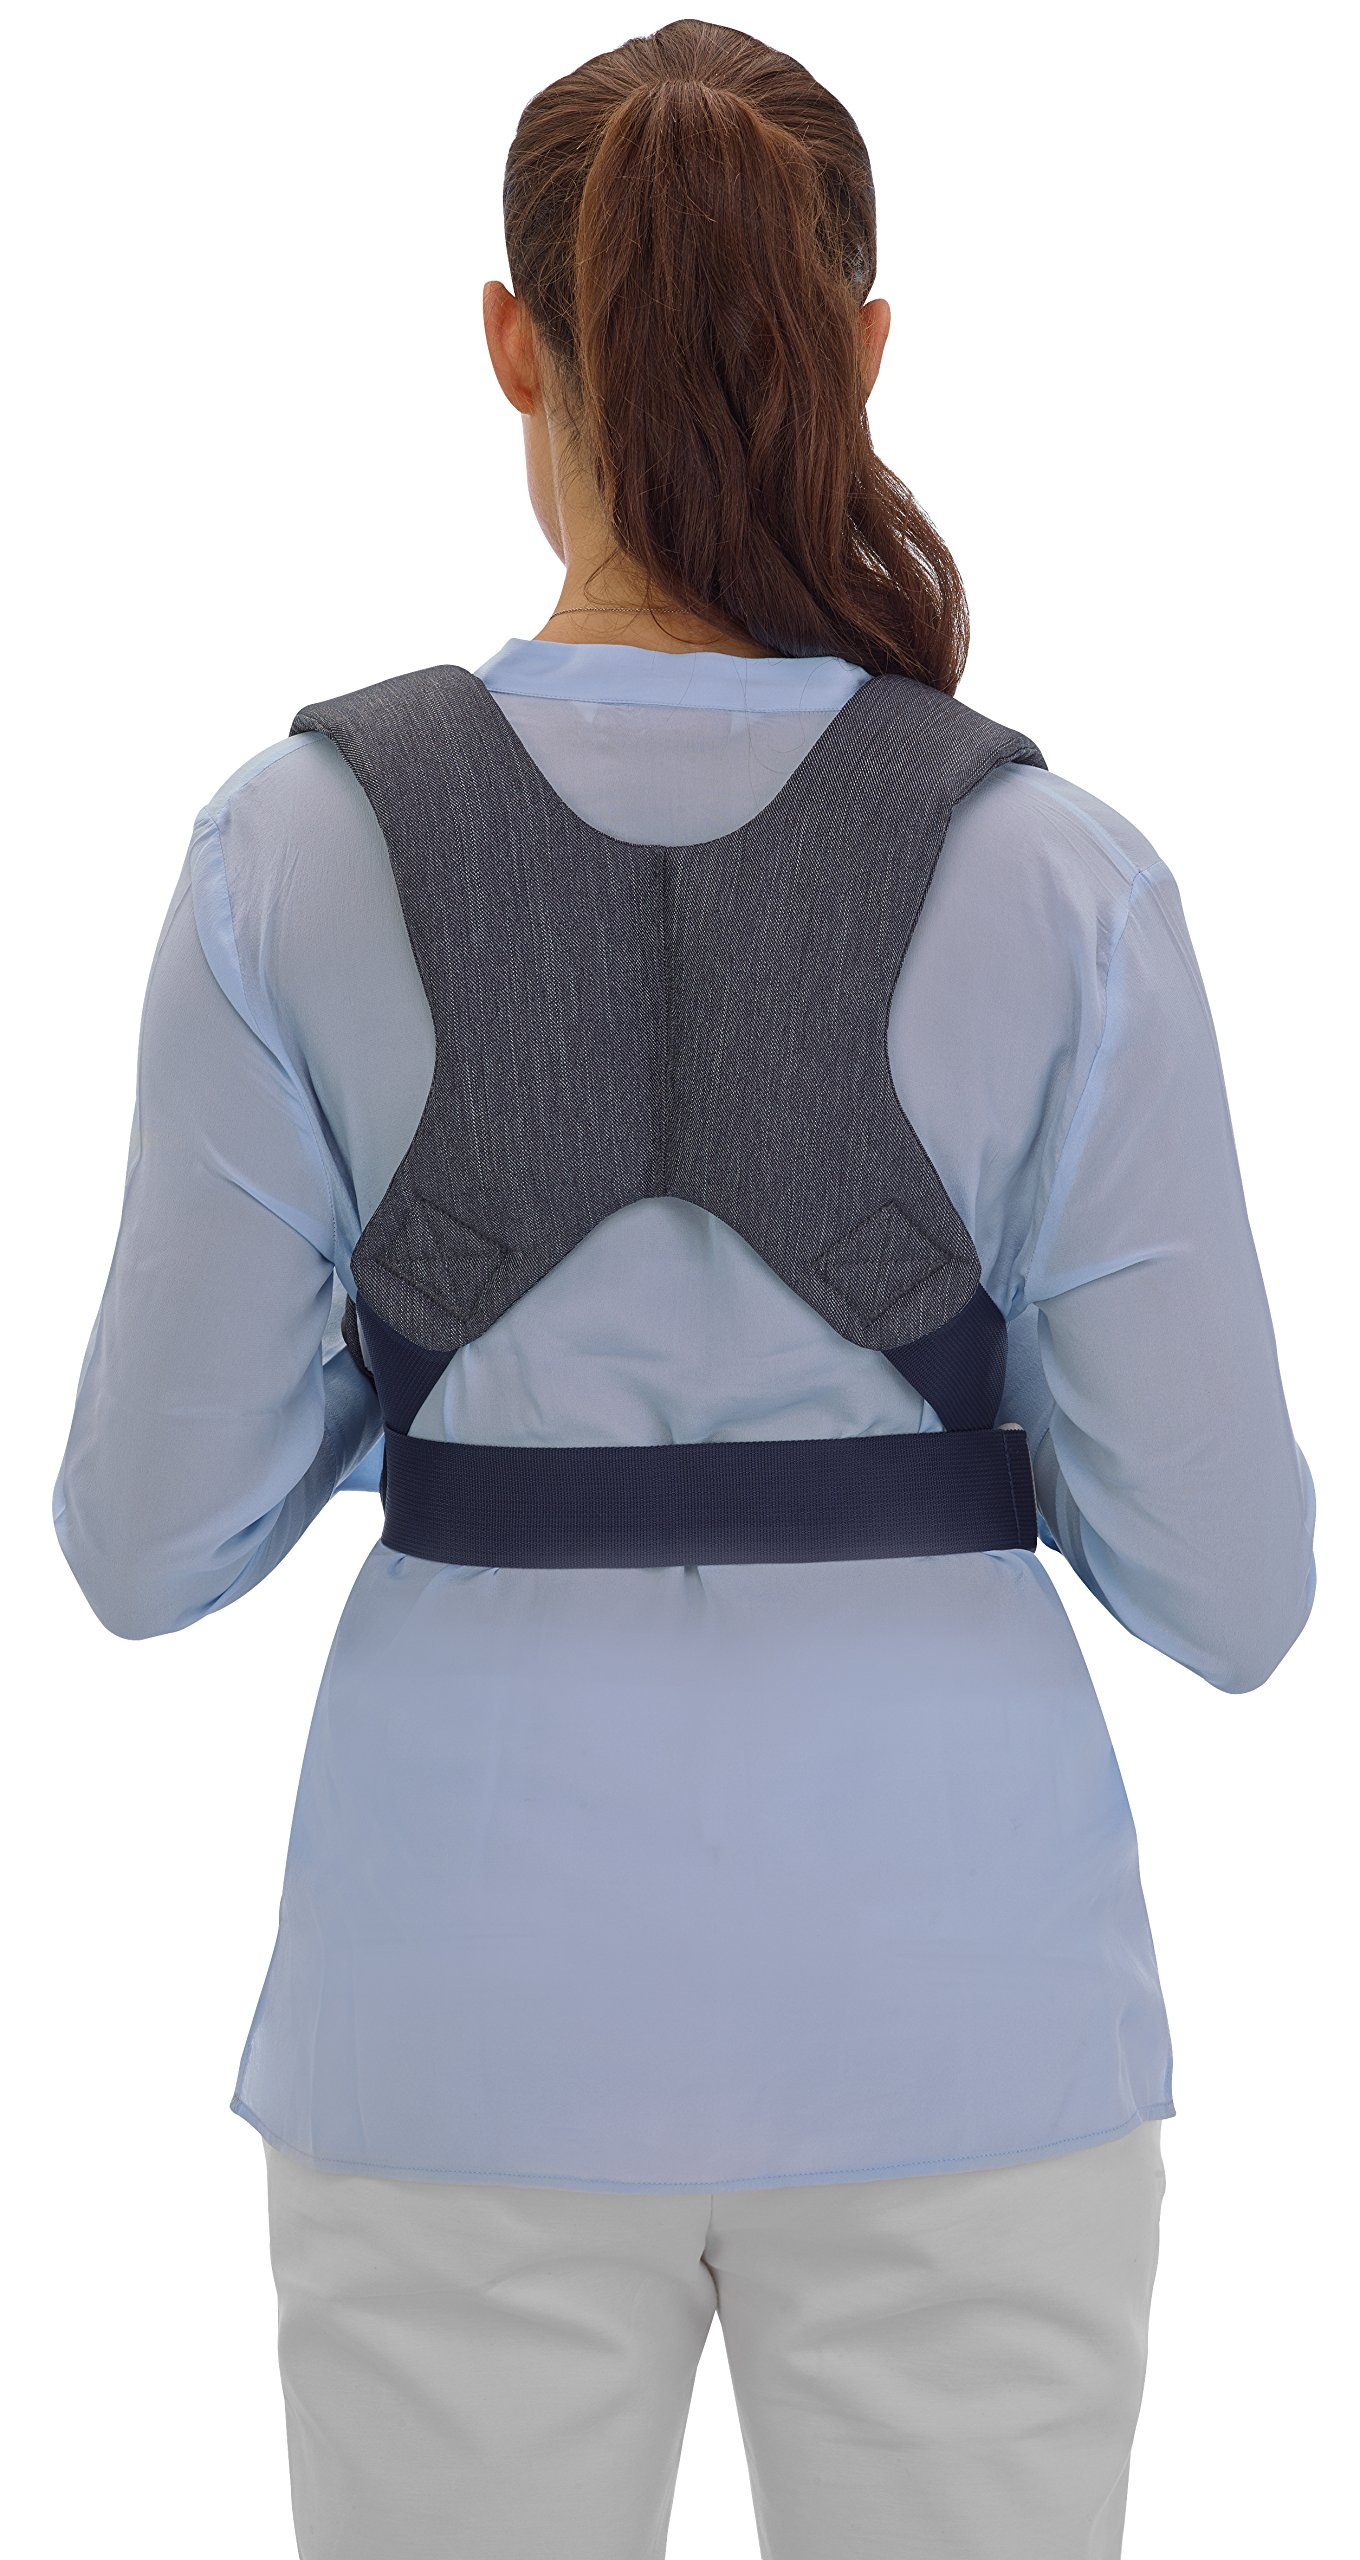 Inglesina Baby Carrier Front Inglesina Comfortable and easy-to-use adjusting belts Comfortable and wide shoulder braces for ultimate support Useful washable and removable bib 3